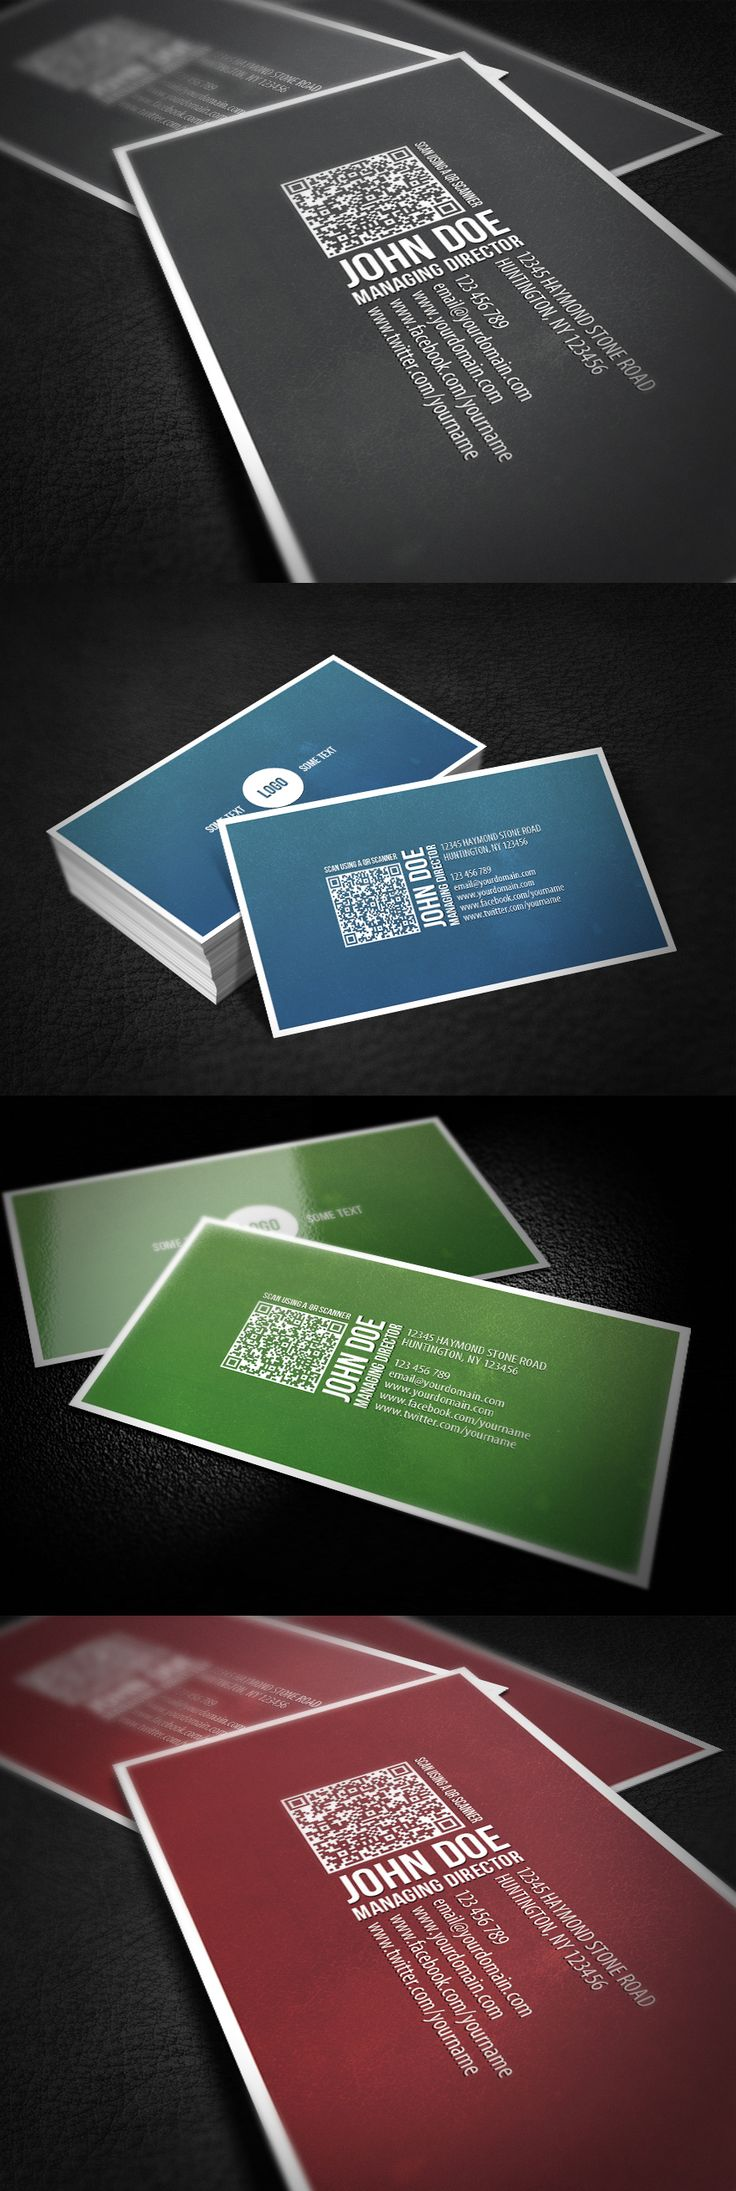 Business Card With QR Code by ~glenngoh on deviantART  http://www.techirsh.com